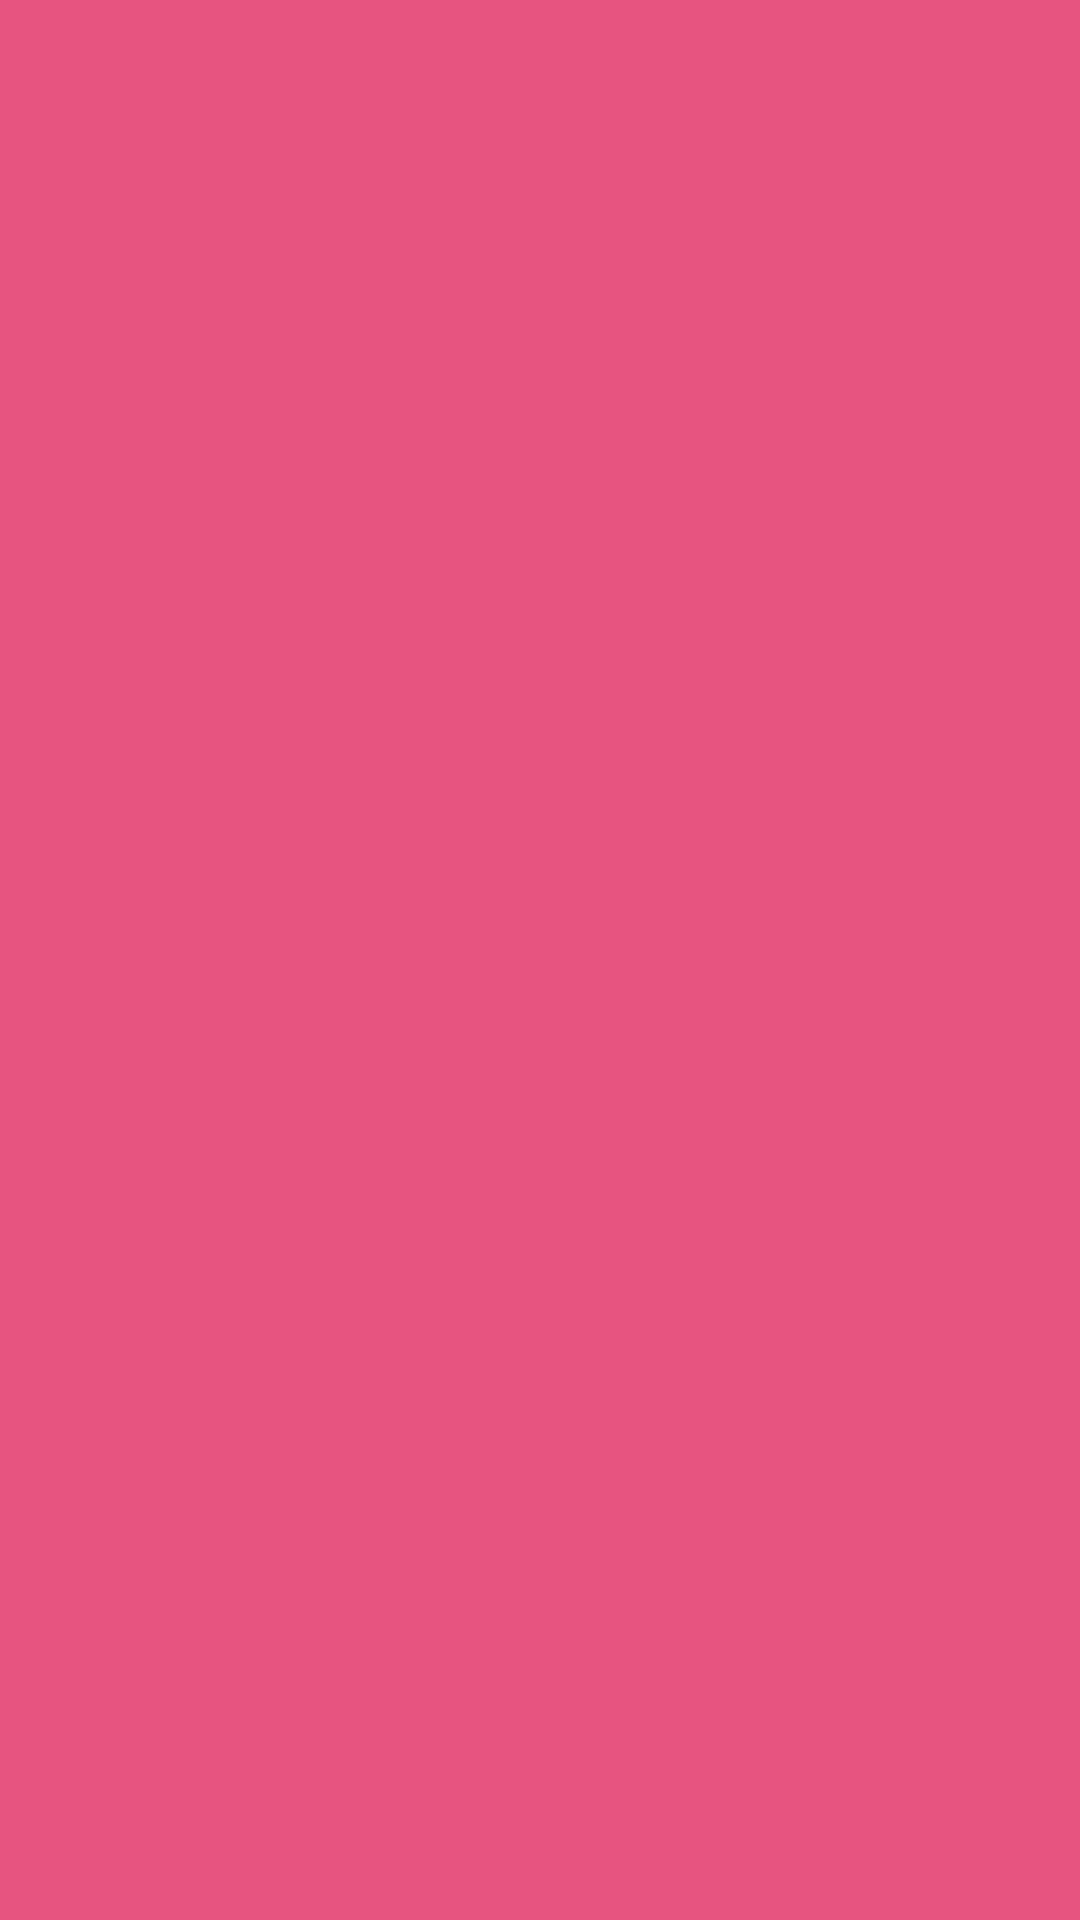 1080x1920 Dark Pink Solid Color Background